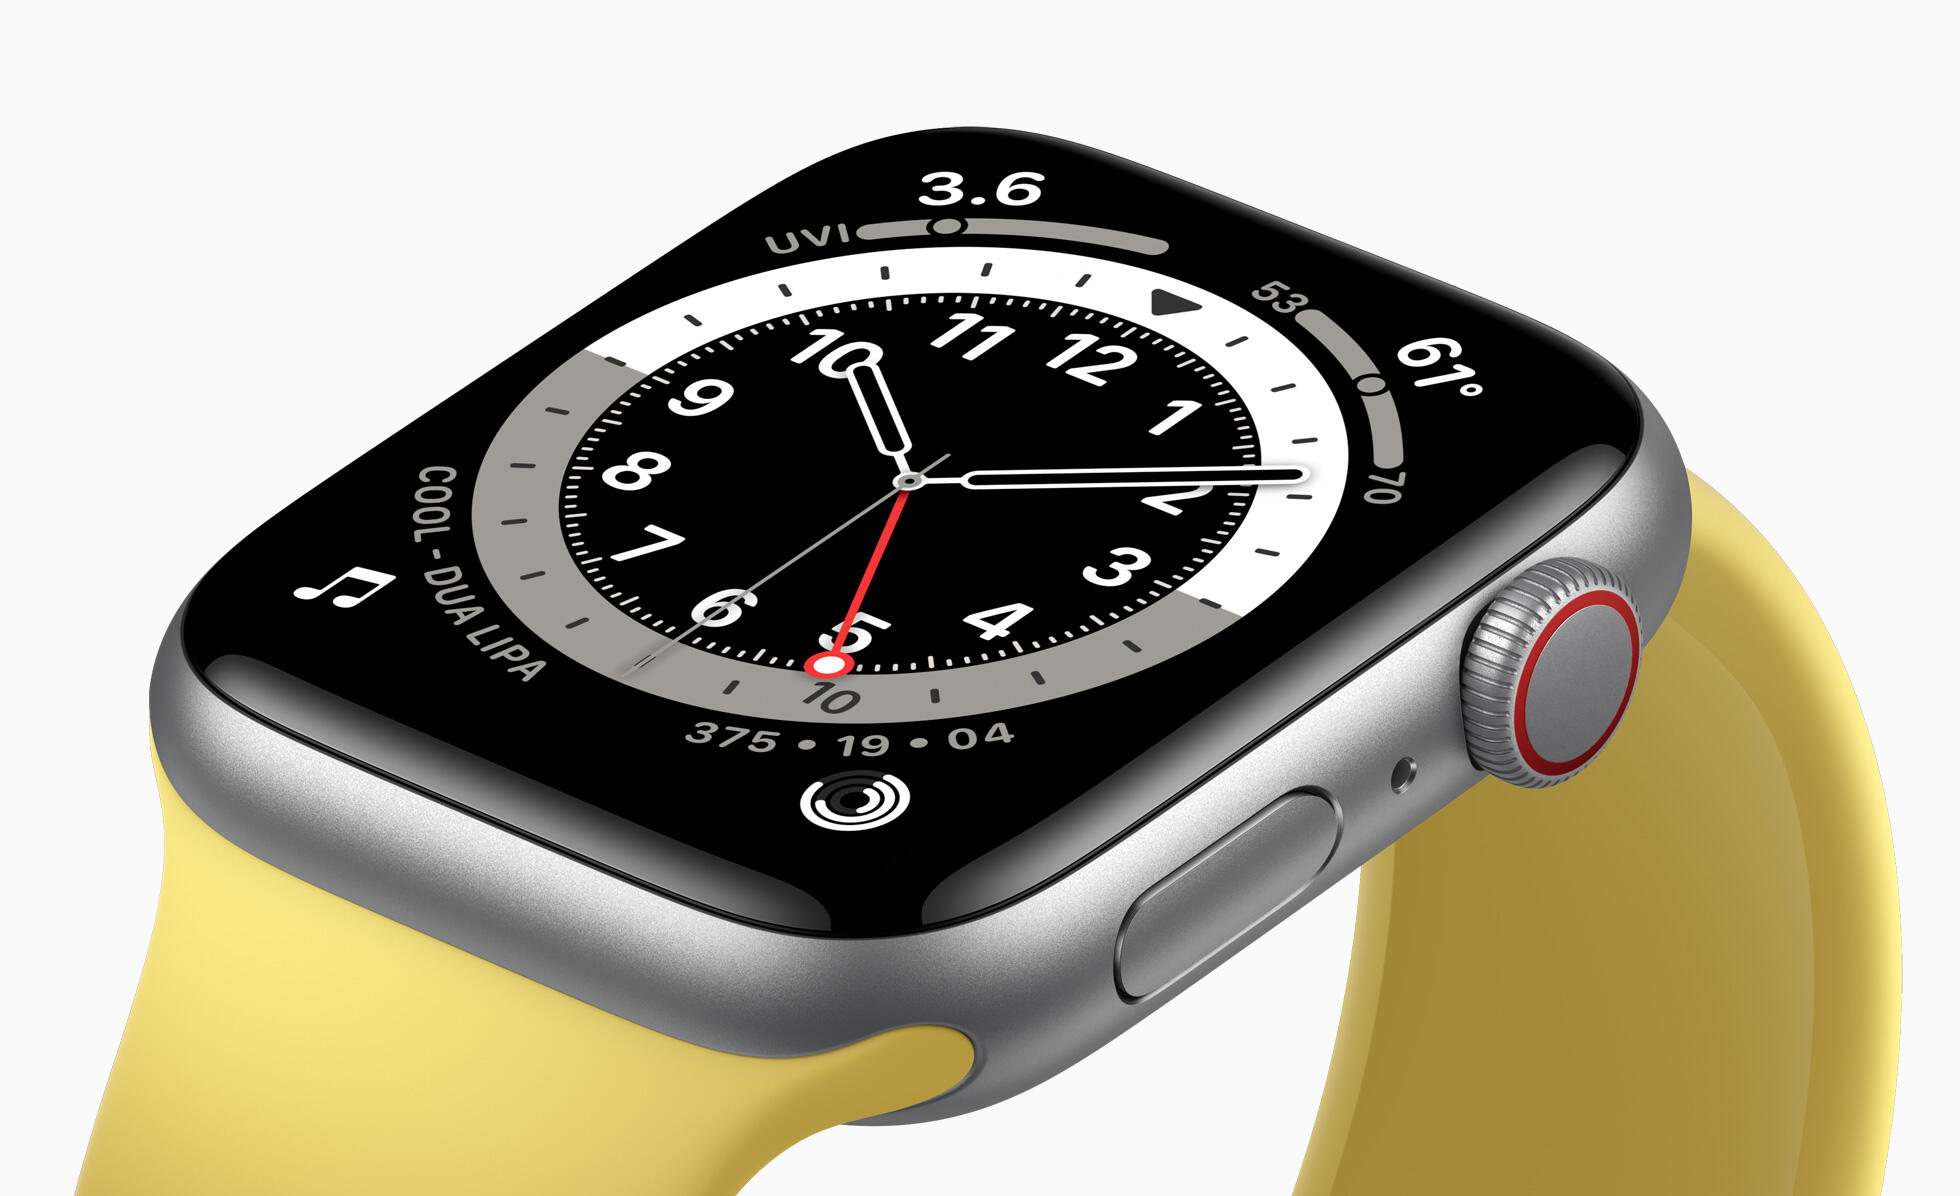 063-apple-event-9-15-2020-apple-watch-series-6.png